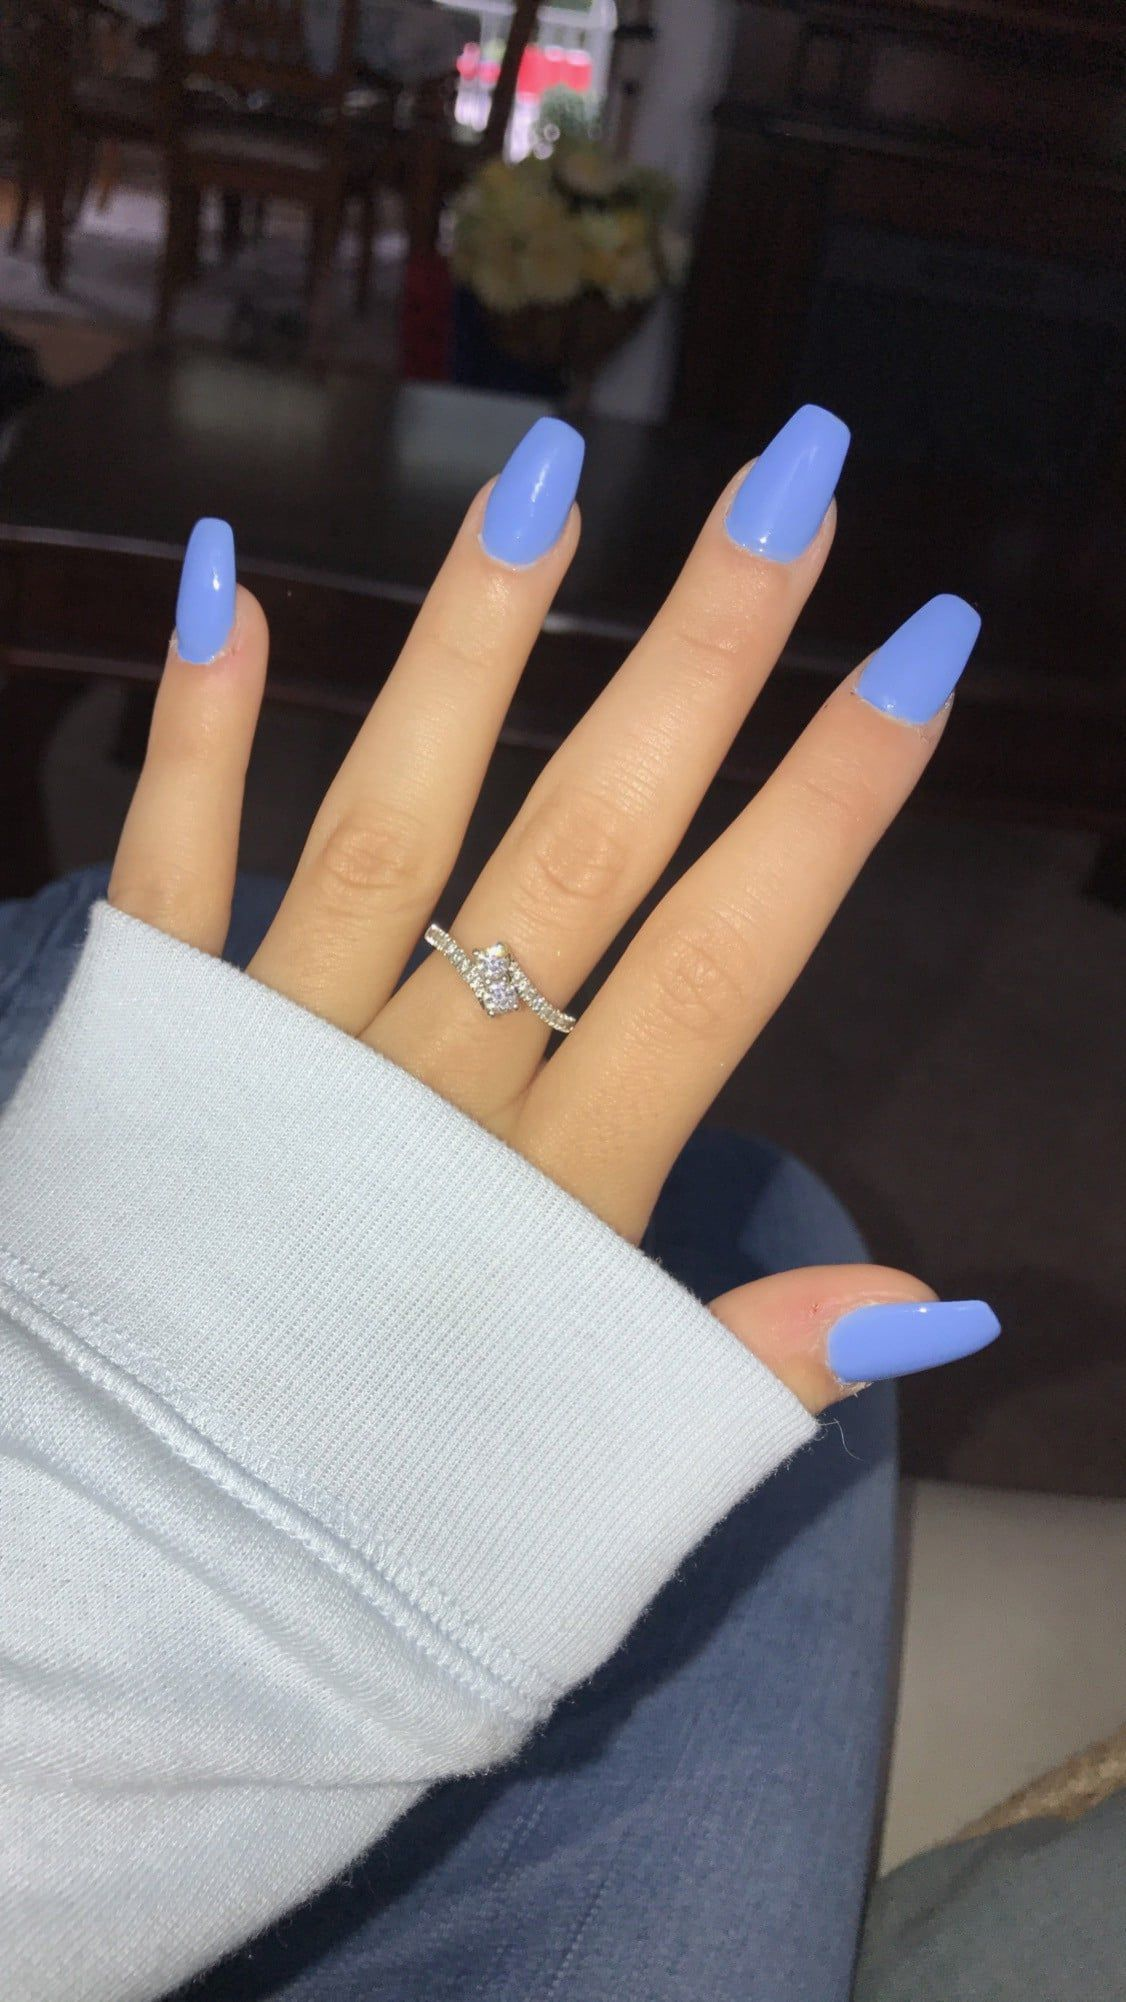 22 New Nail Designs For 11 Year Olds Coffin Nails Colors 2018 Inspirational Nail Art Idea U Acrylic Nails Coffin Short Coffin Shape Nails Short Acrylic Nails